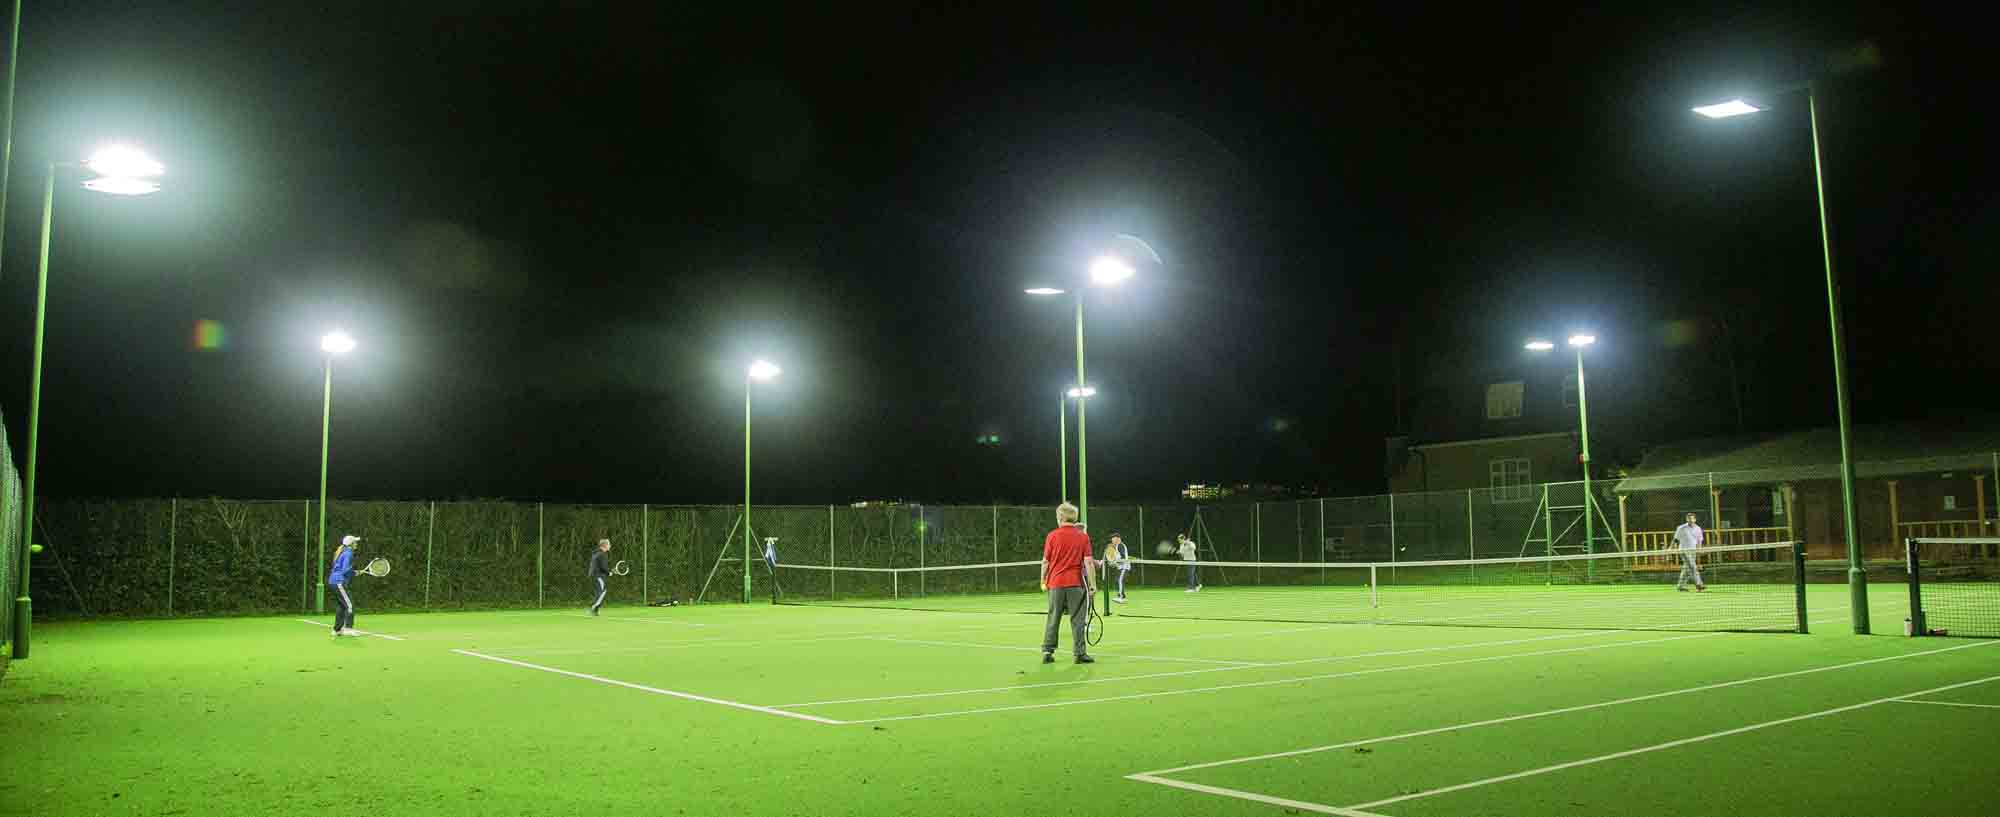 Floodlit tennis courts on a Thursday evening in Stoke Poges